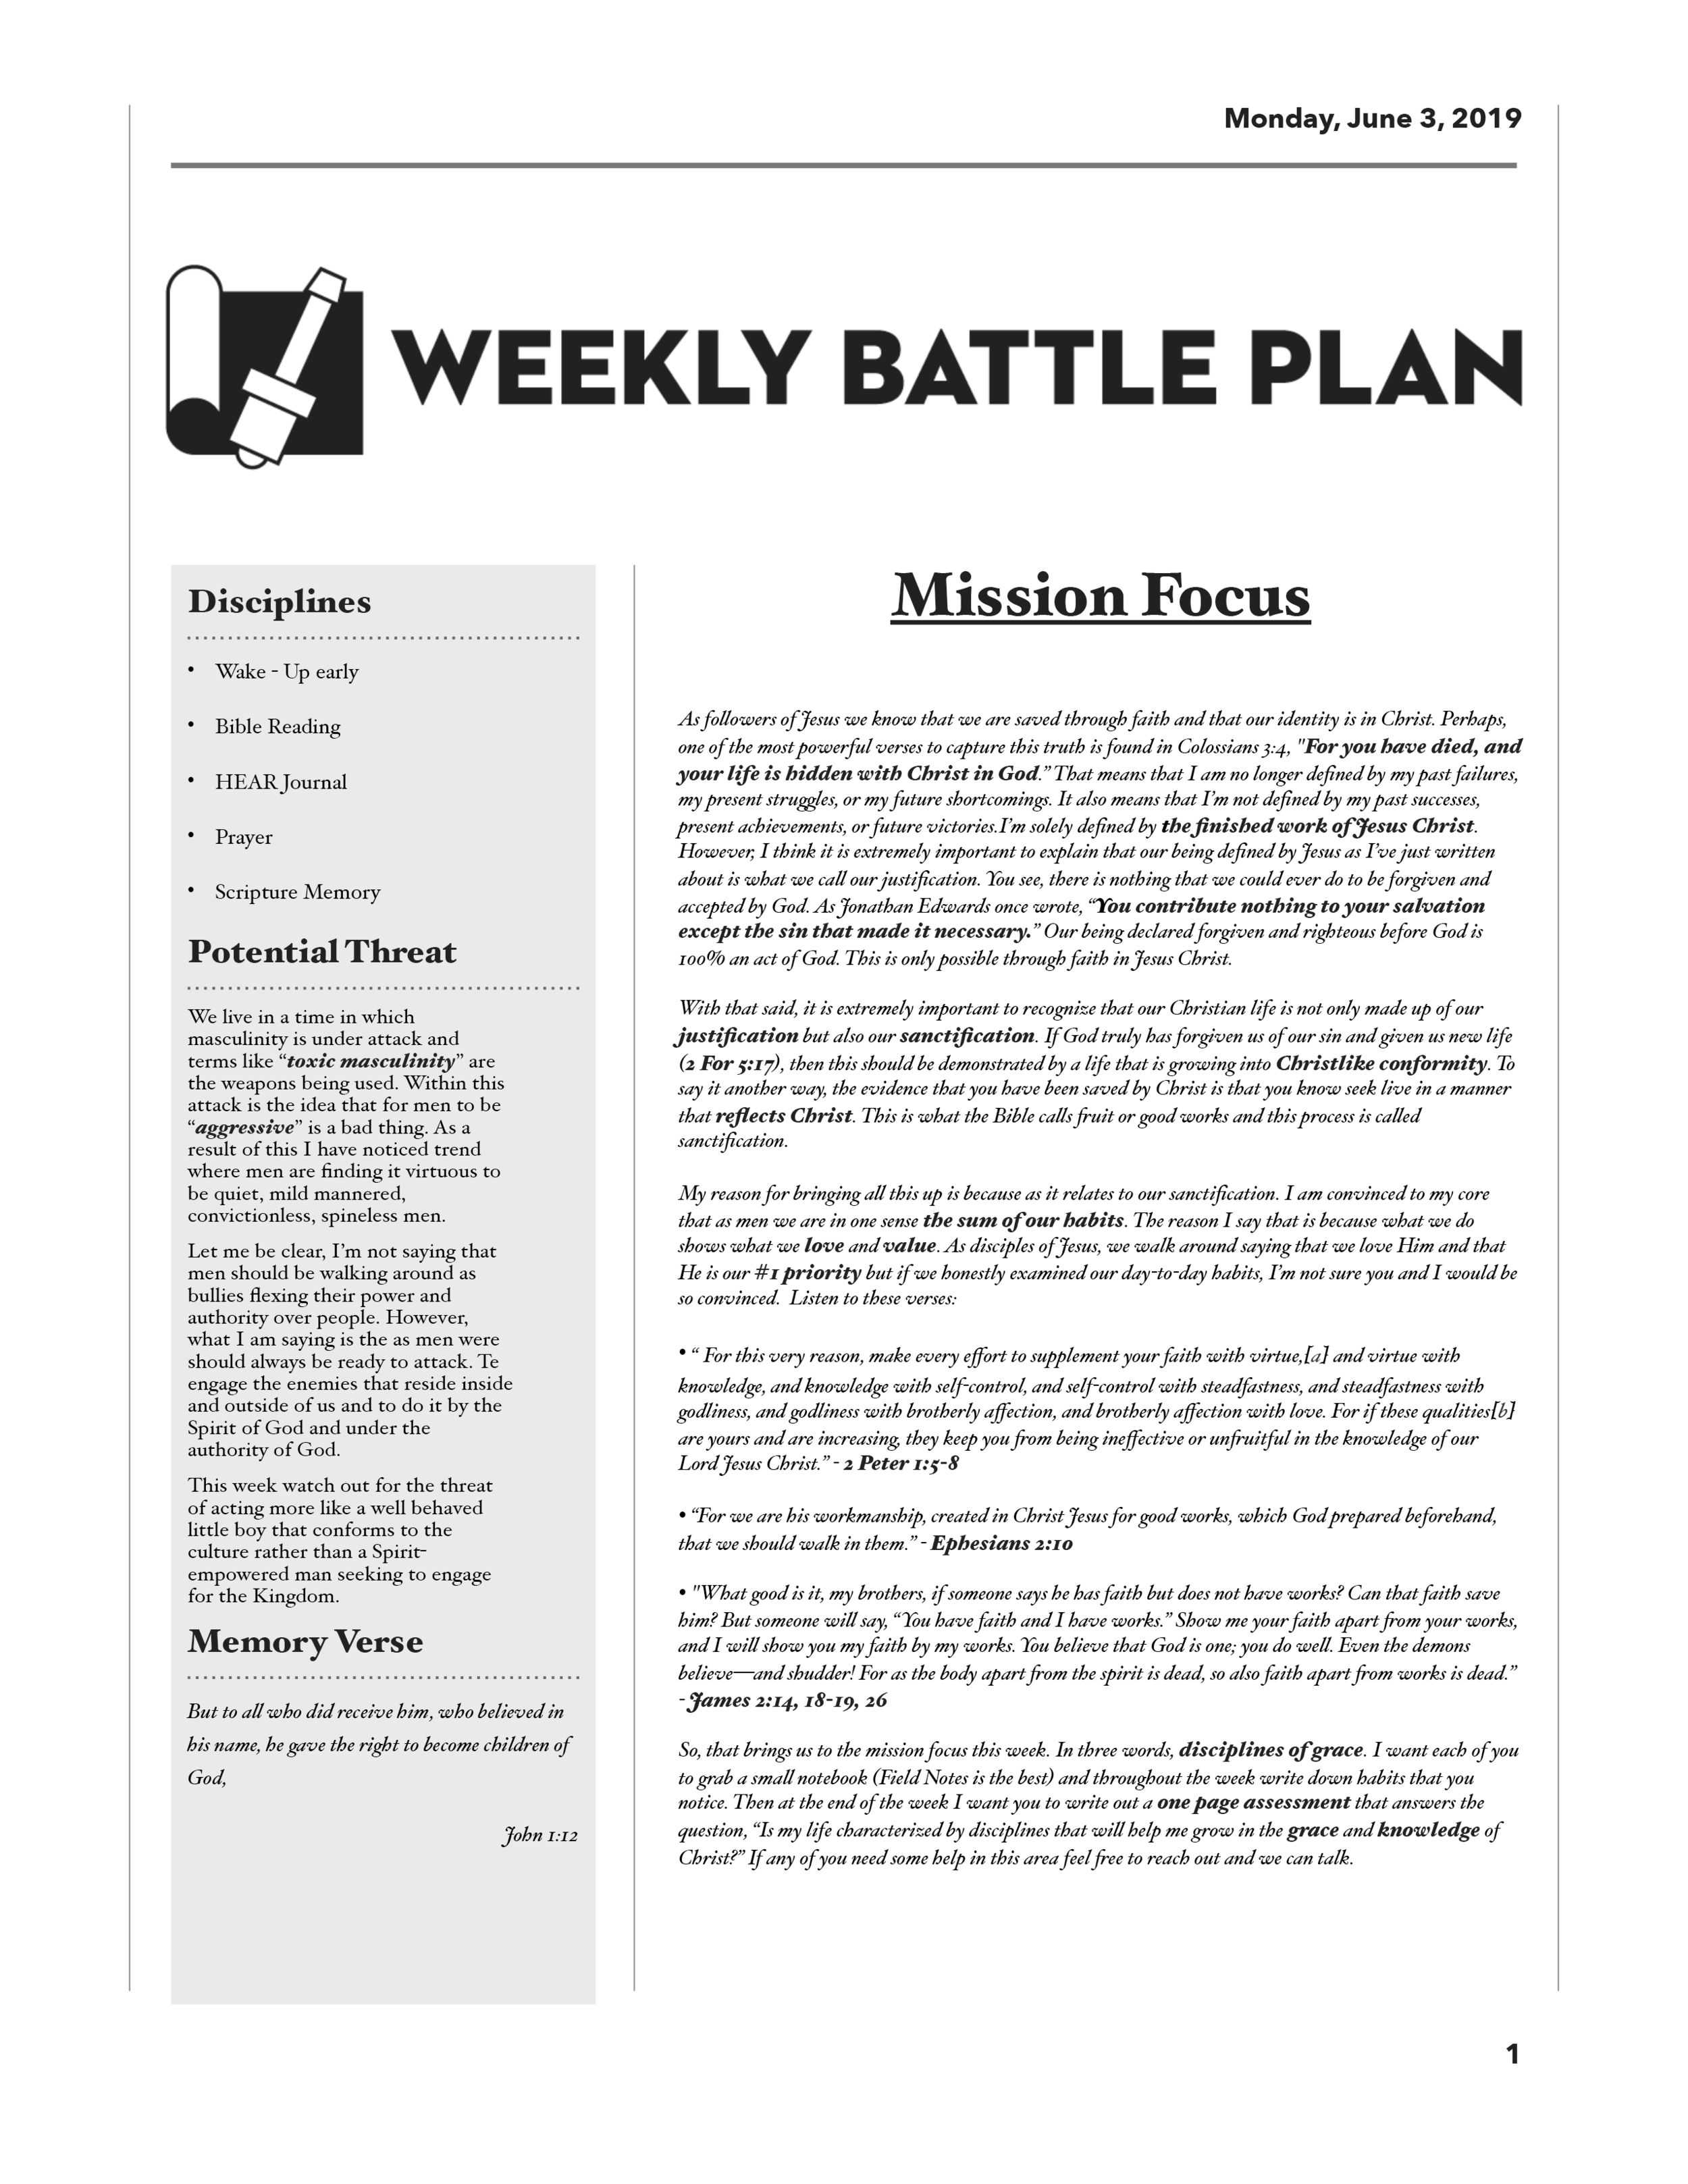 Battle Plan 6.3pages-1.png